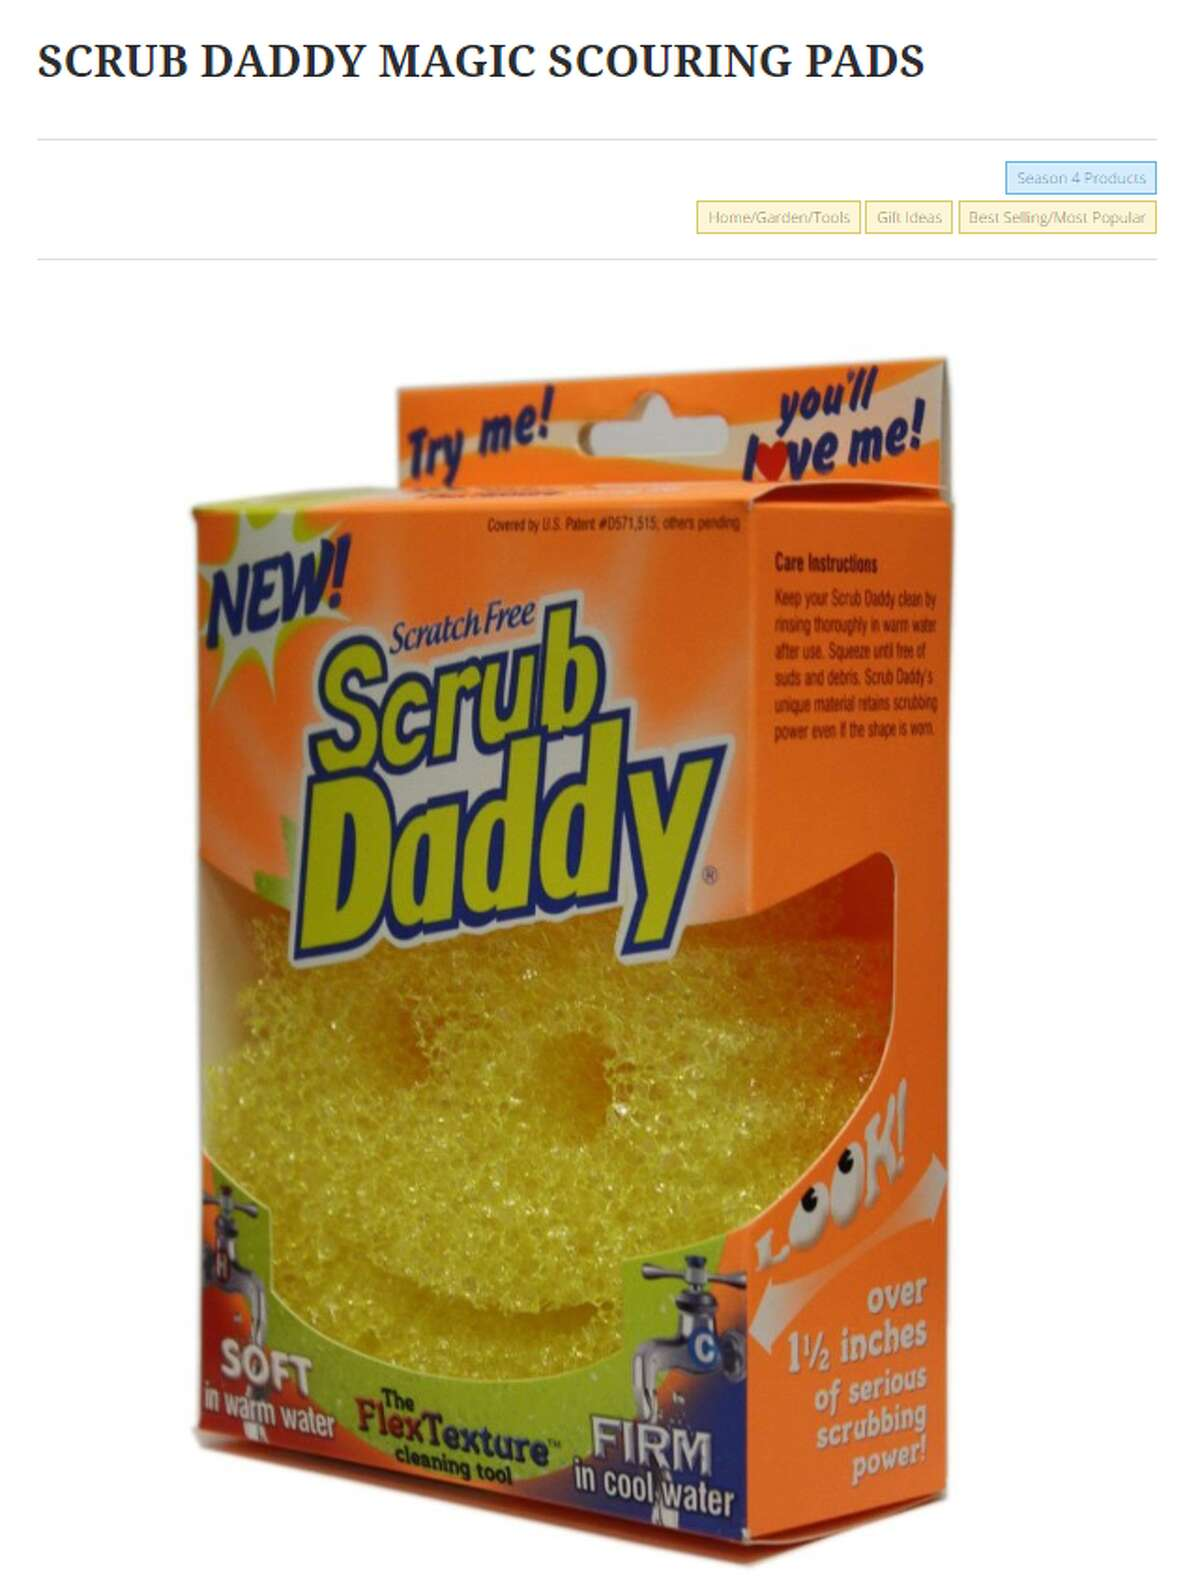 Scrub Daddy In 2012, Shank Tank investor Lori Greiner offered the scrub daddy founder $200,000 for 20 percent equity, according to Business Insider. Almost three years later, it sold more than 10 million units and brought in $50 million in sales, Insider reported. It's essentially a kitchen sponge that becomes more rigid in cold water and softer in warm water.